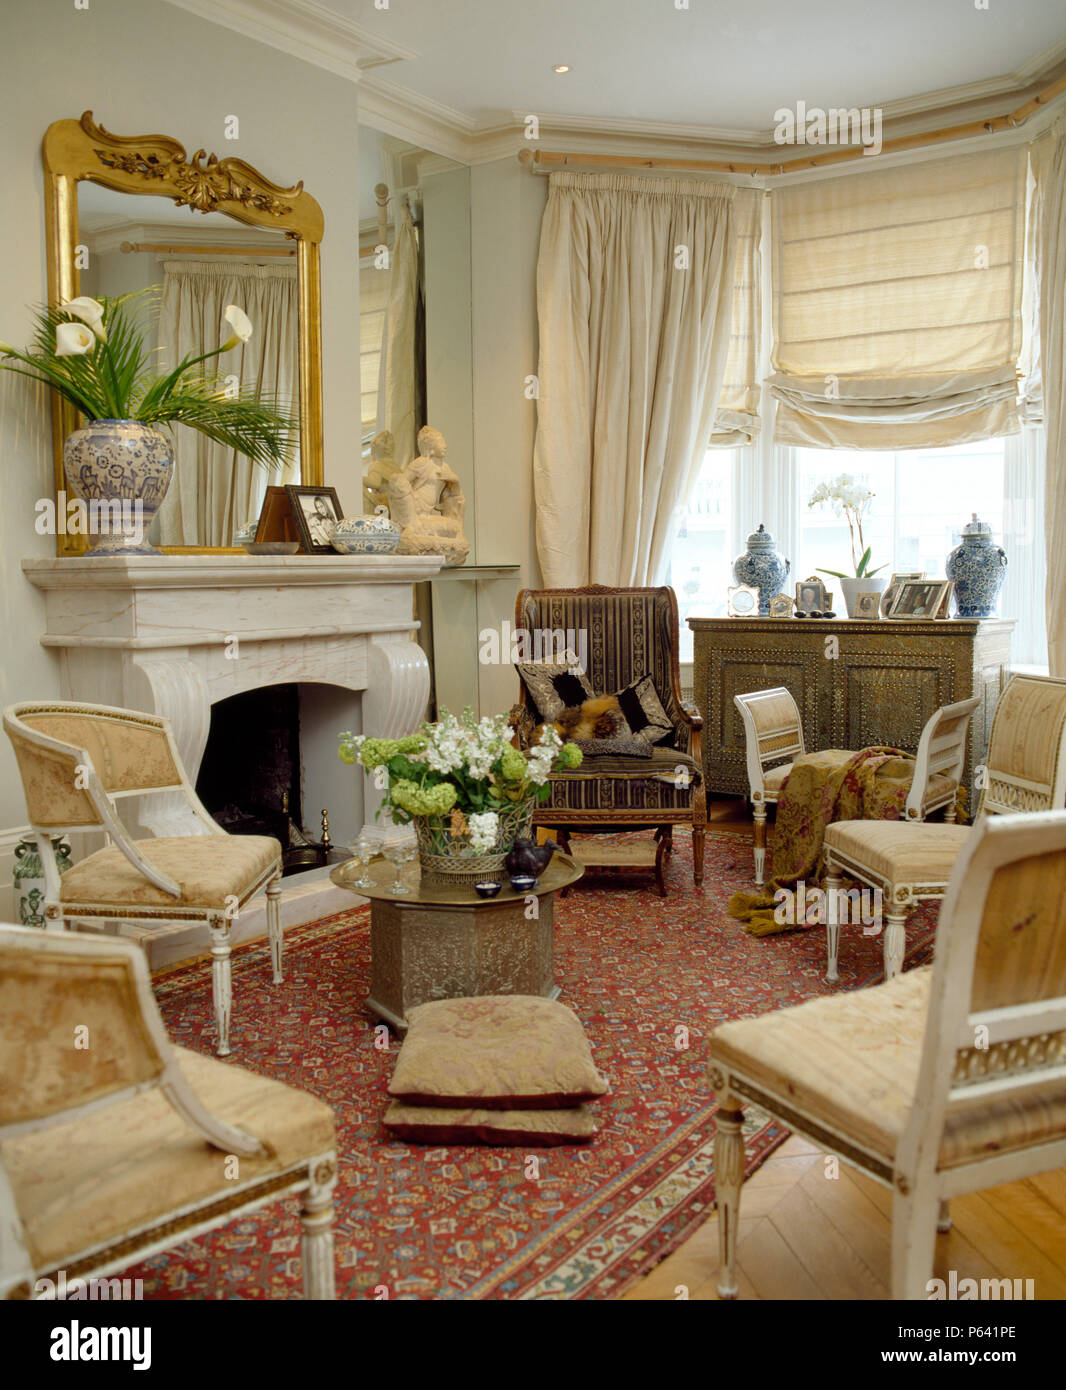 Antique gilt mirror above fireplace in elegant pale grey living room ...